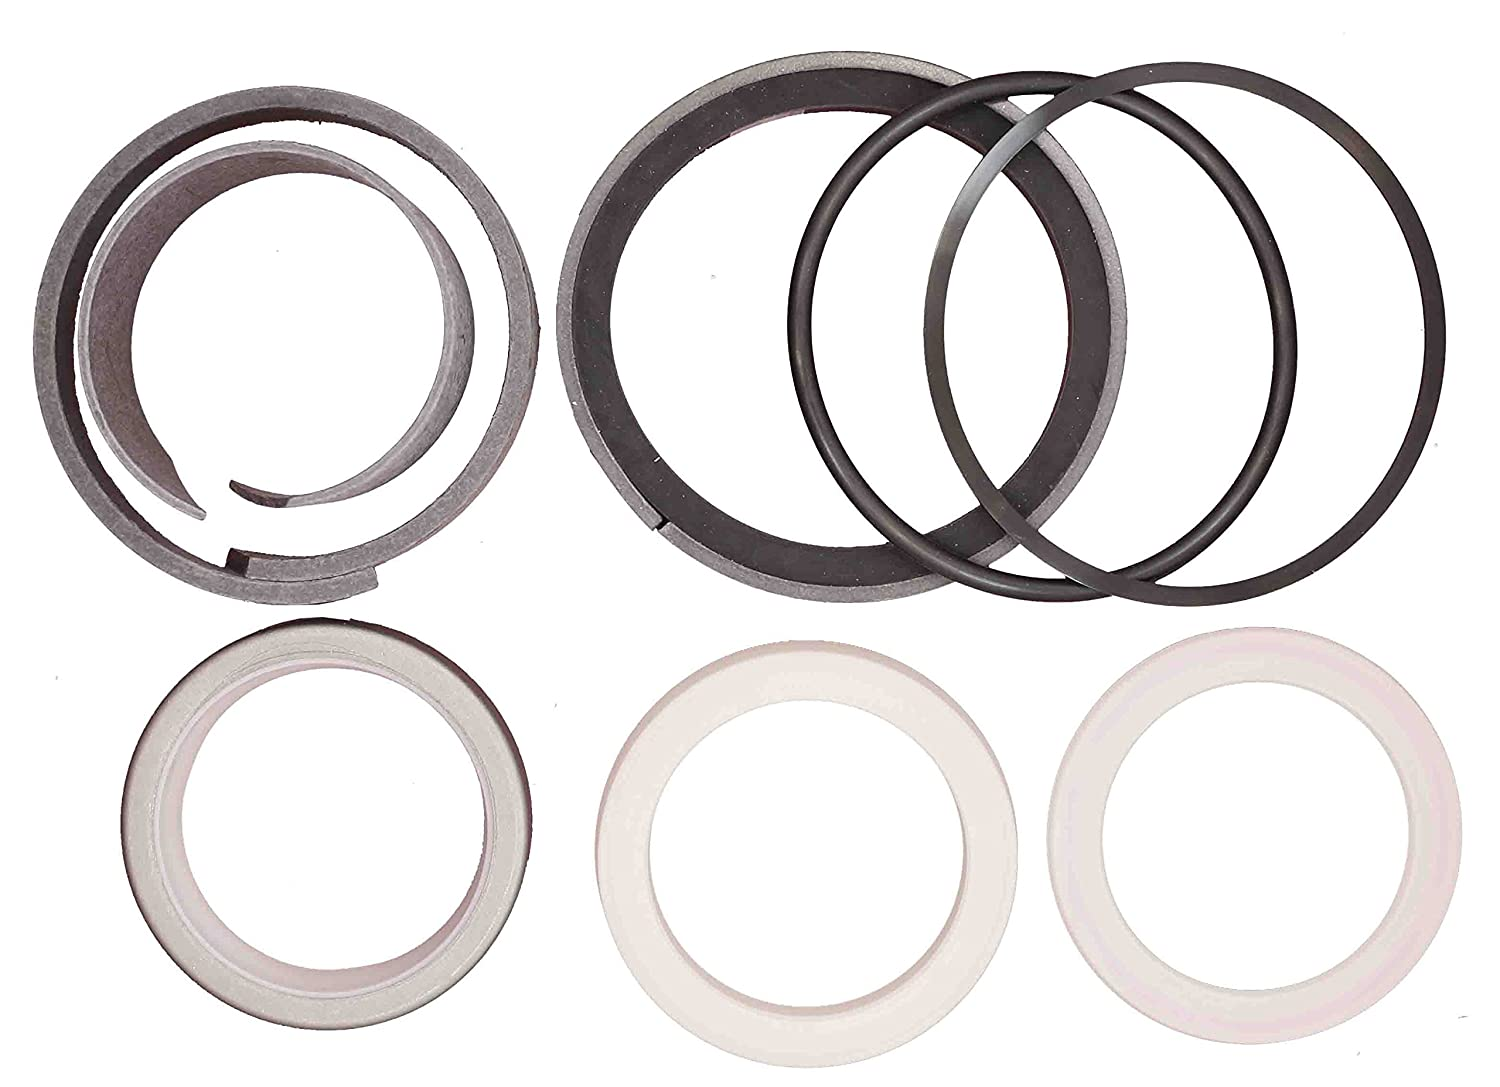 CASE 1543267C1 HYDRAULIC CYLINDER SEAL KIT TORNADO HEAVY EQUIPMENT PARTS